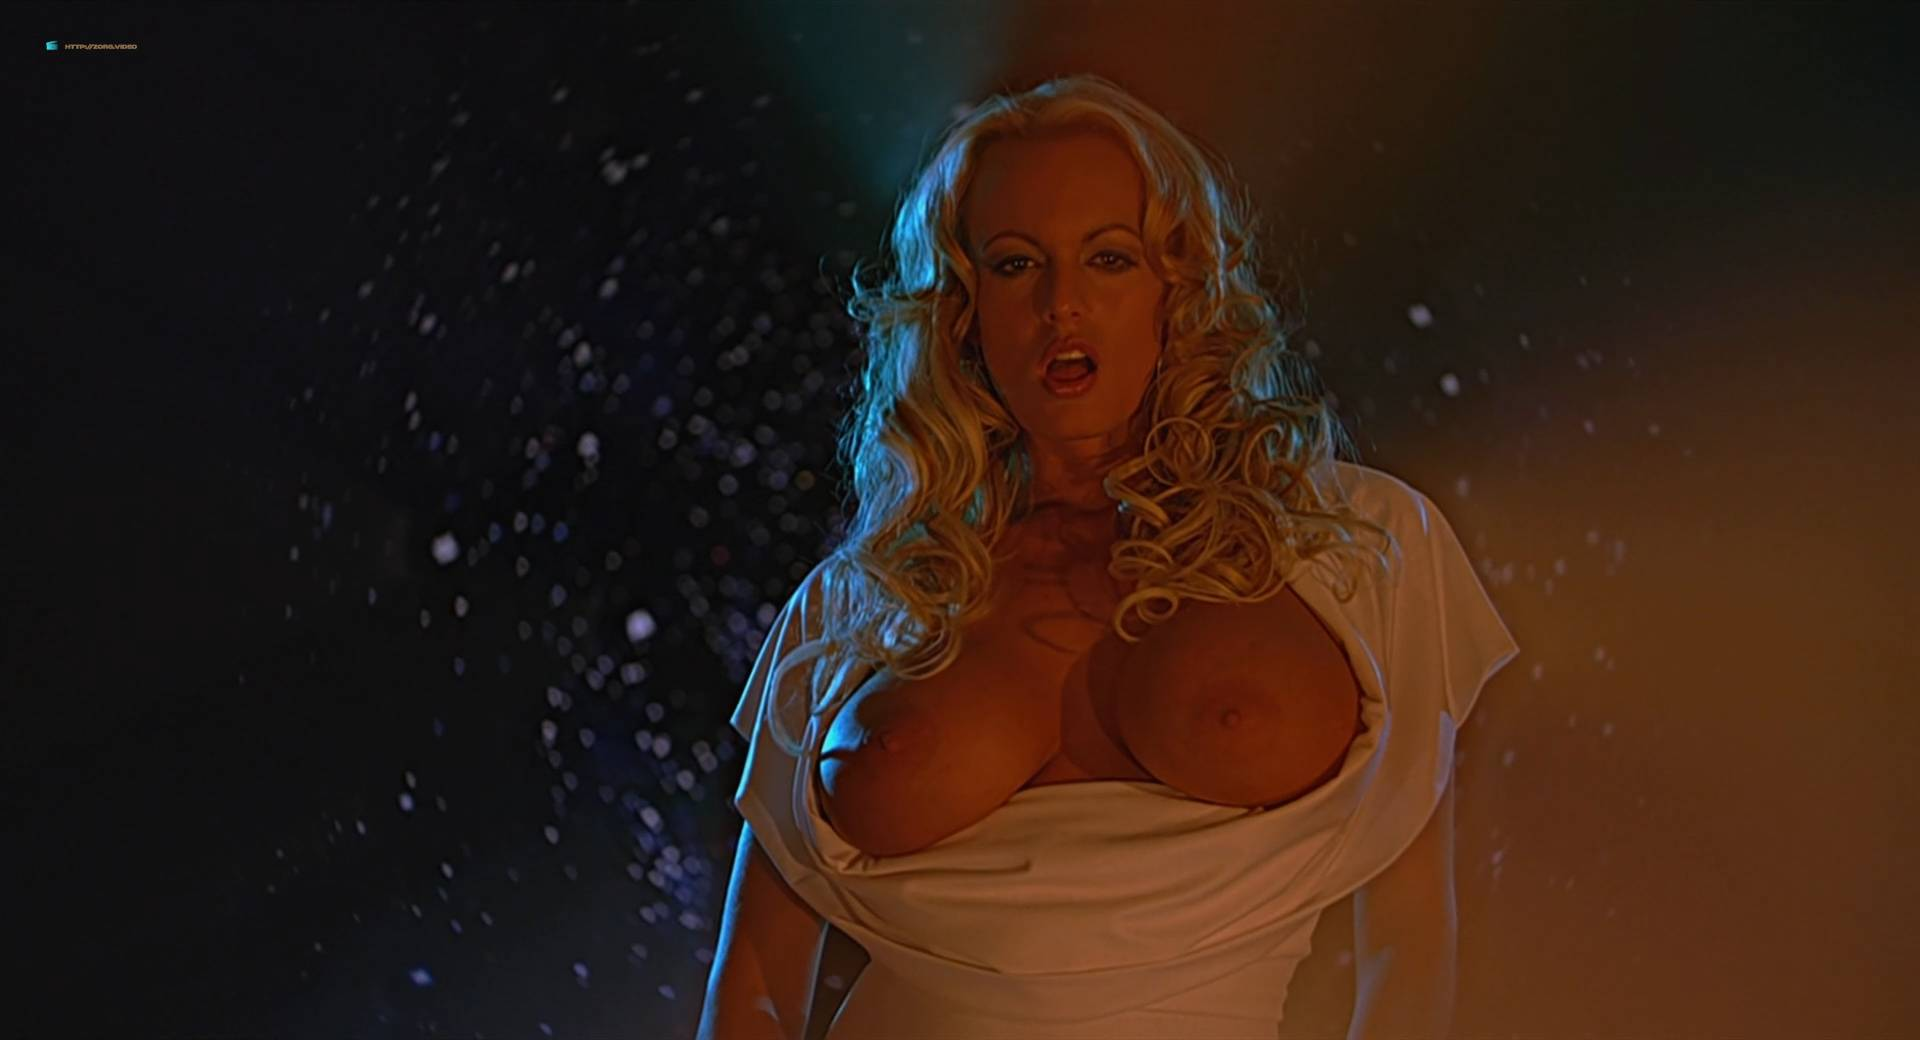 Hbo porn star show